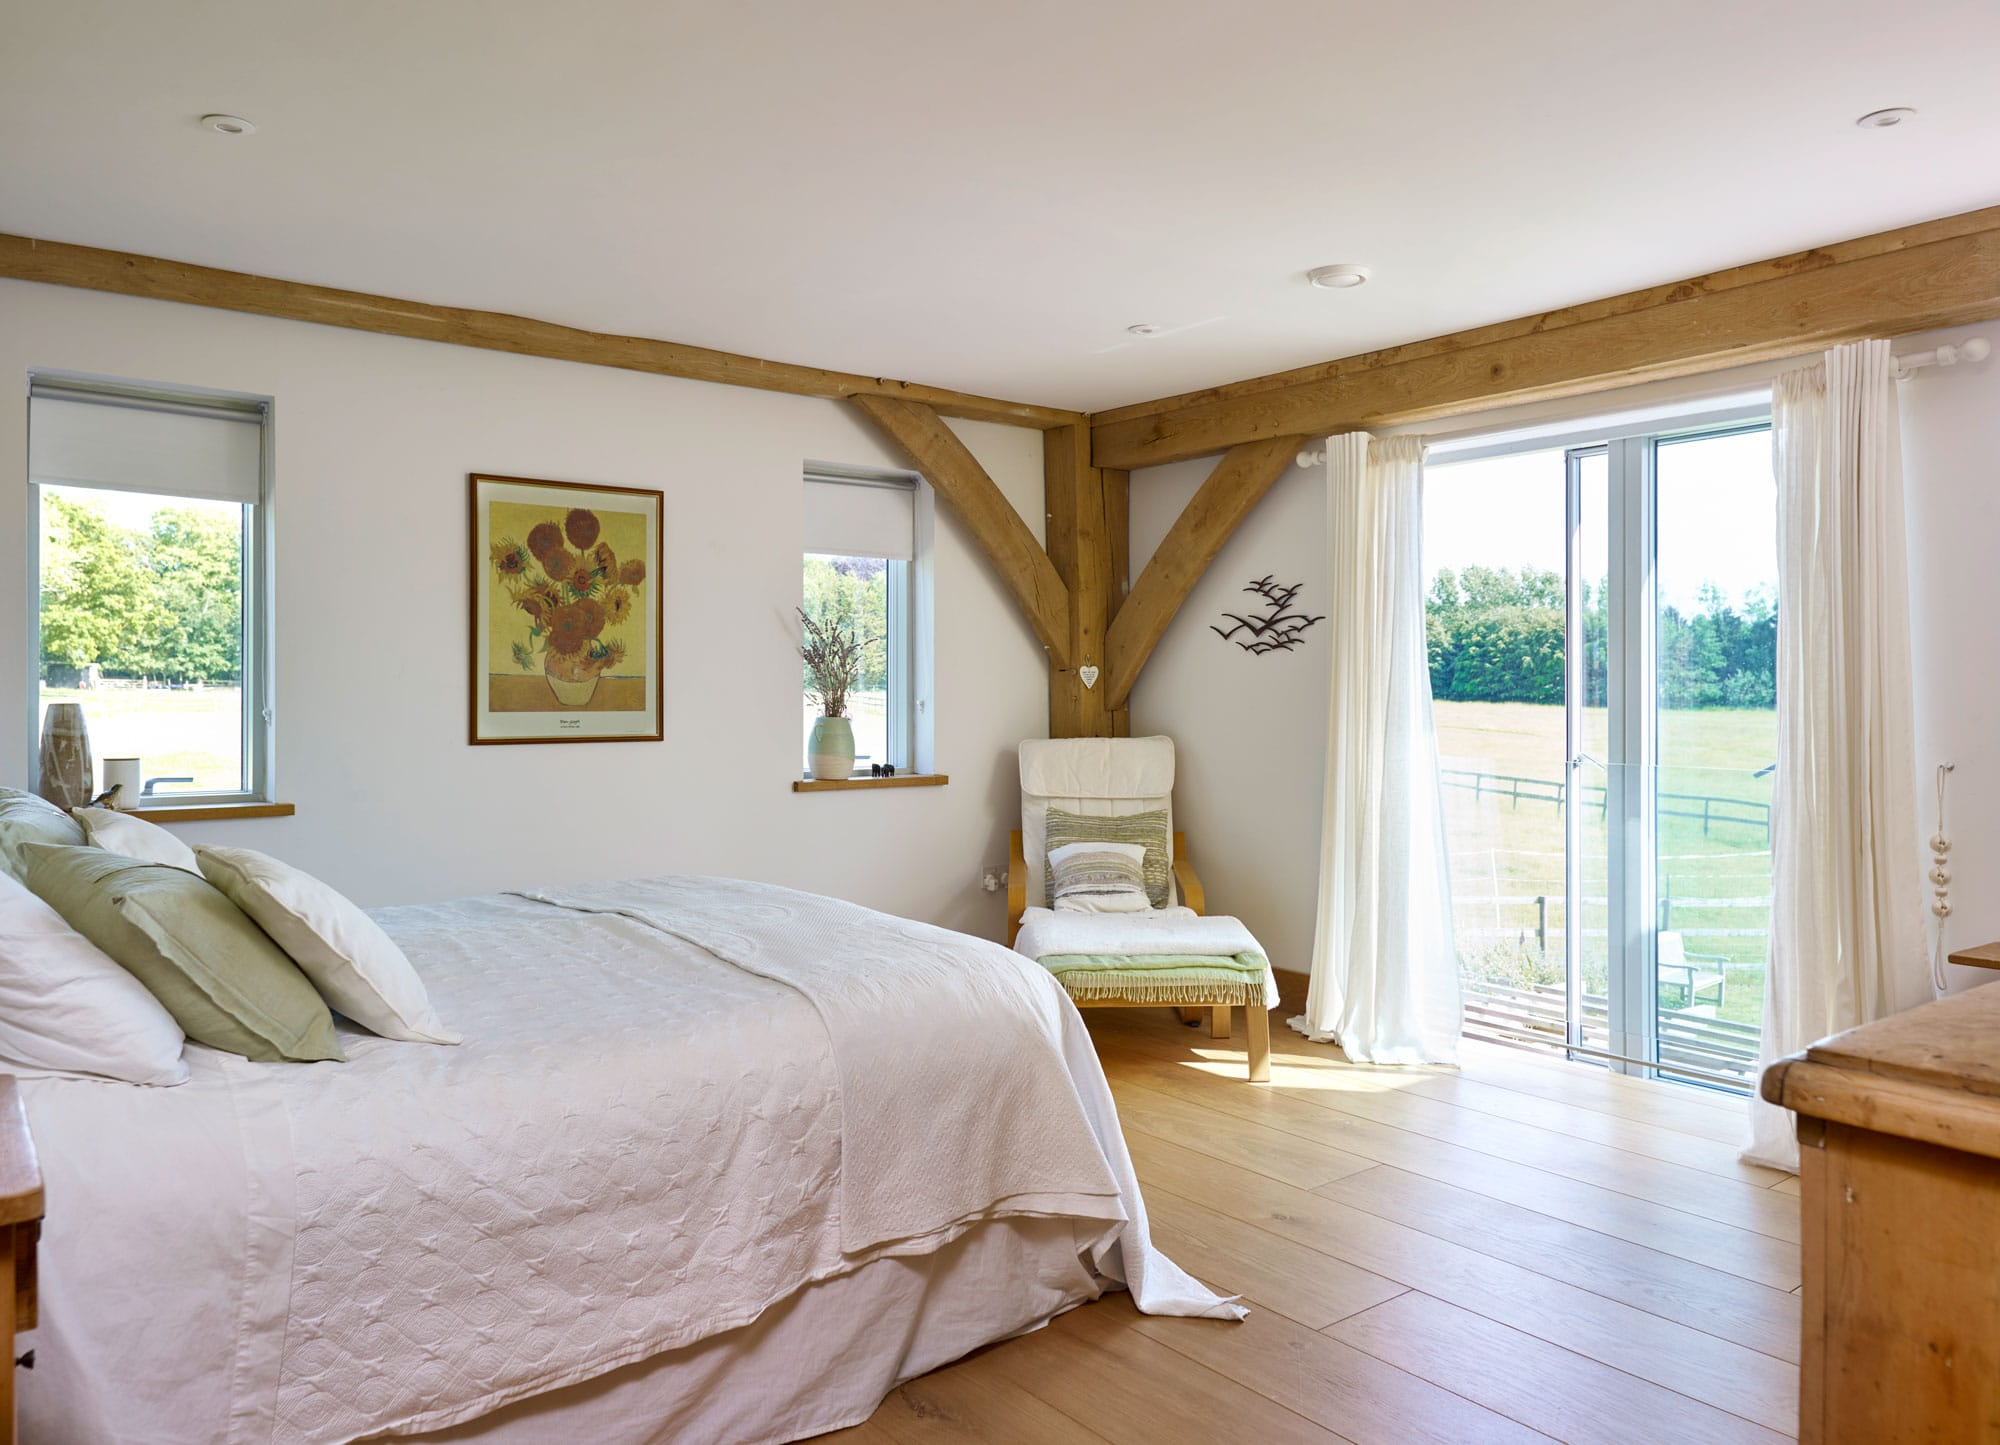 Bright bedroom with exposed floorboards